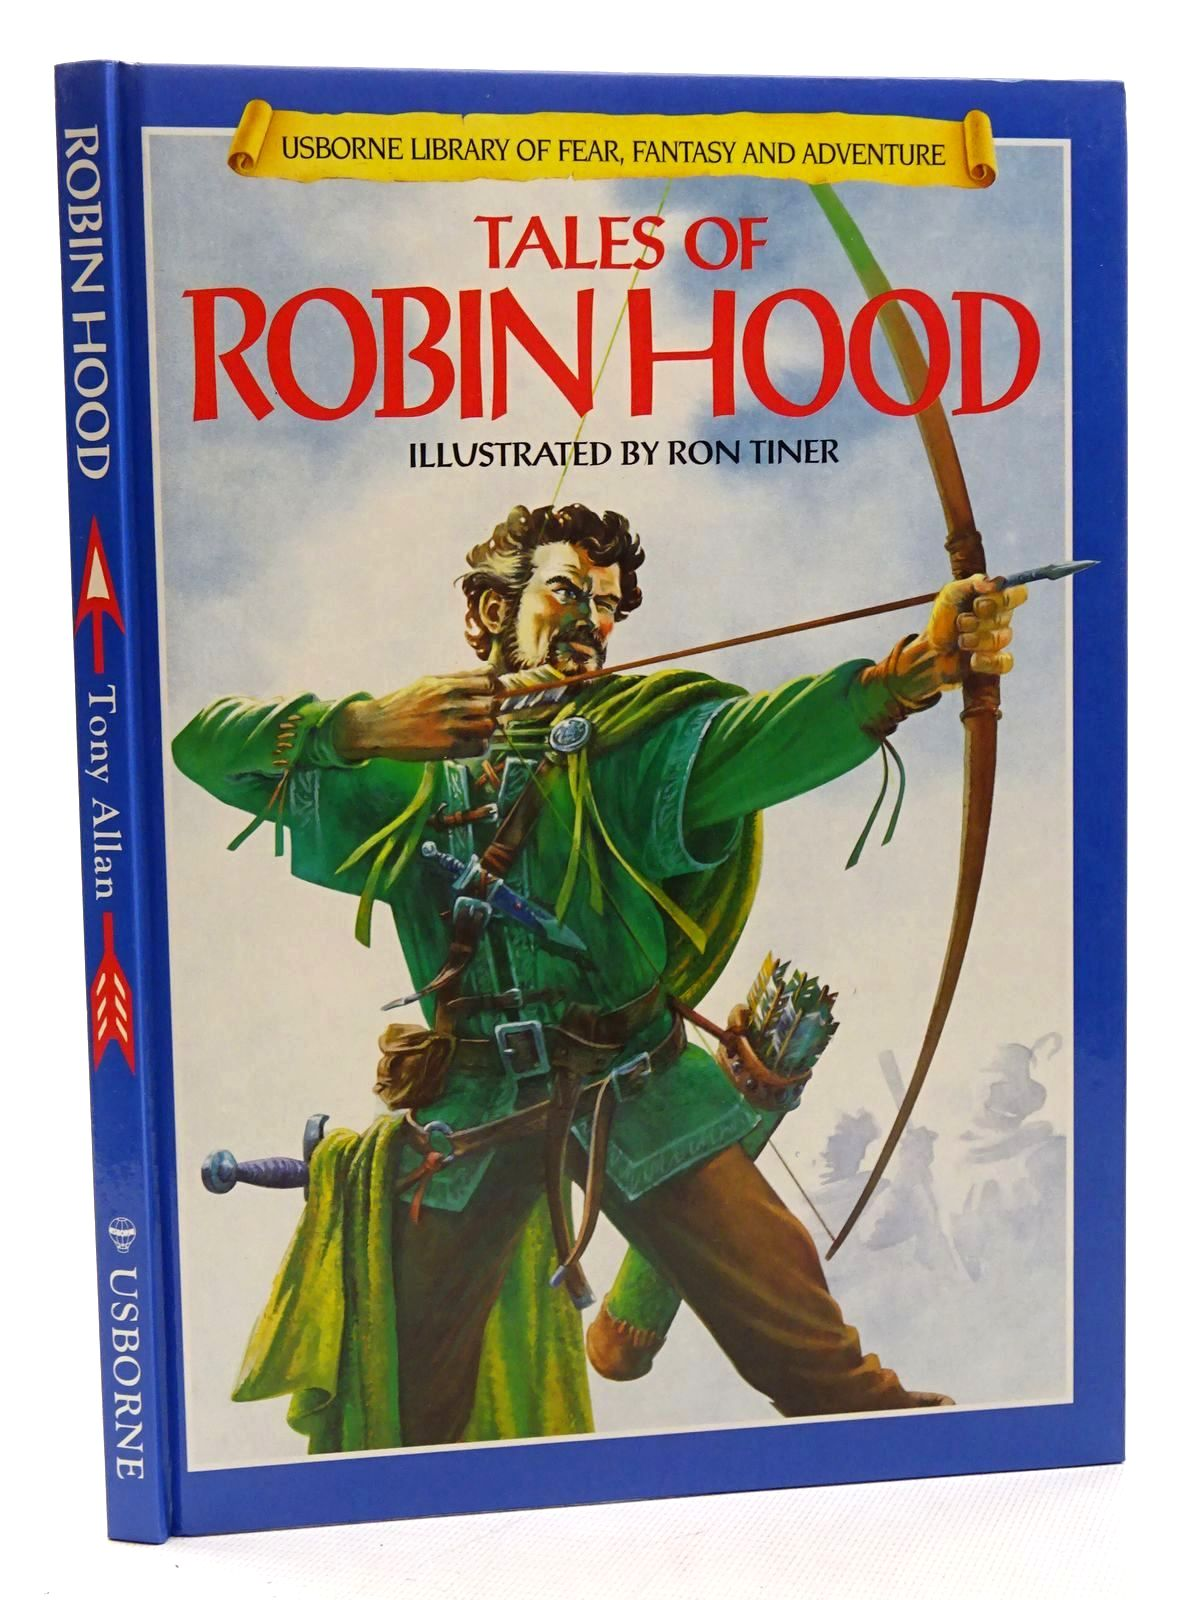 Photo of TALES OF ROBIN HOOD written by Allan, Tony illustrated by Tiner, Ron published by Usborne Publishing Ltd. (STOCK CODE: 2125220)  for sale by Stella & Rose's Books